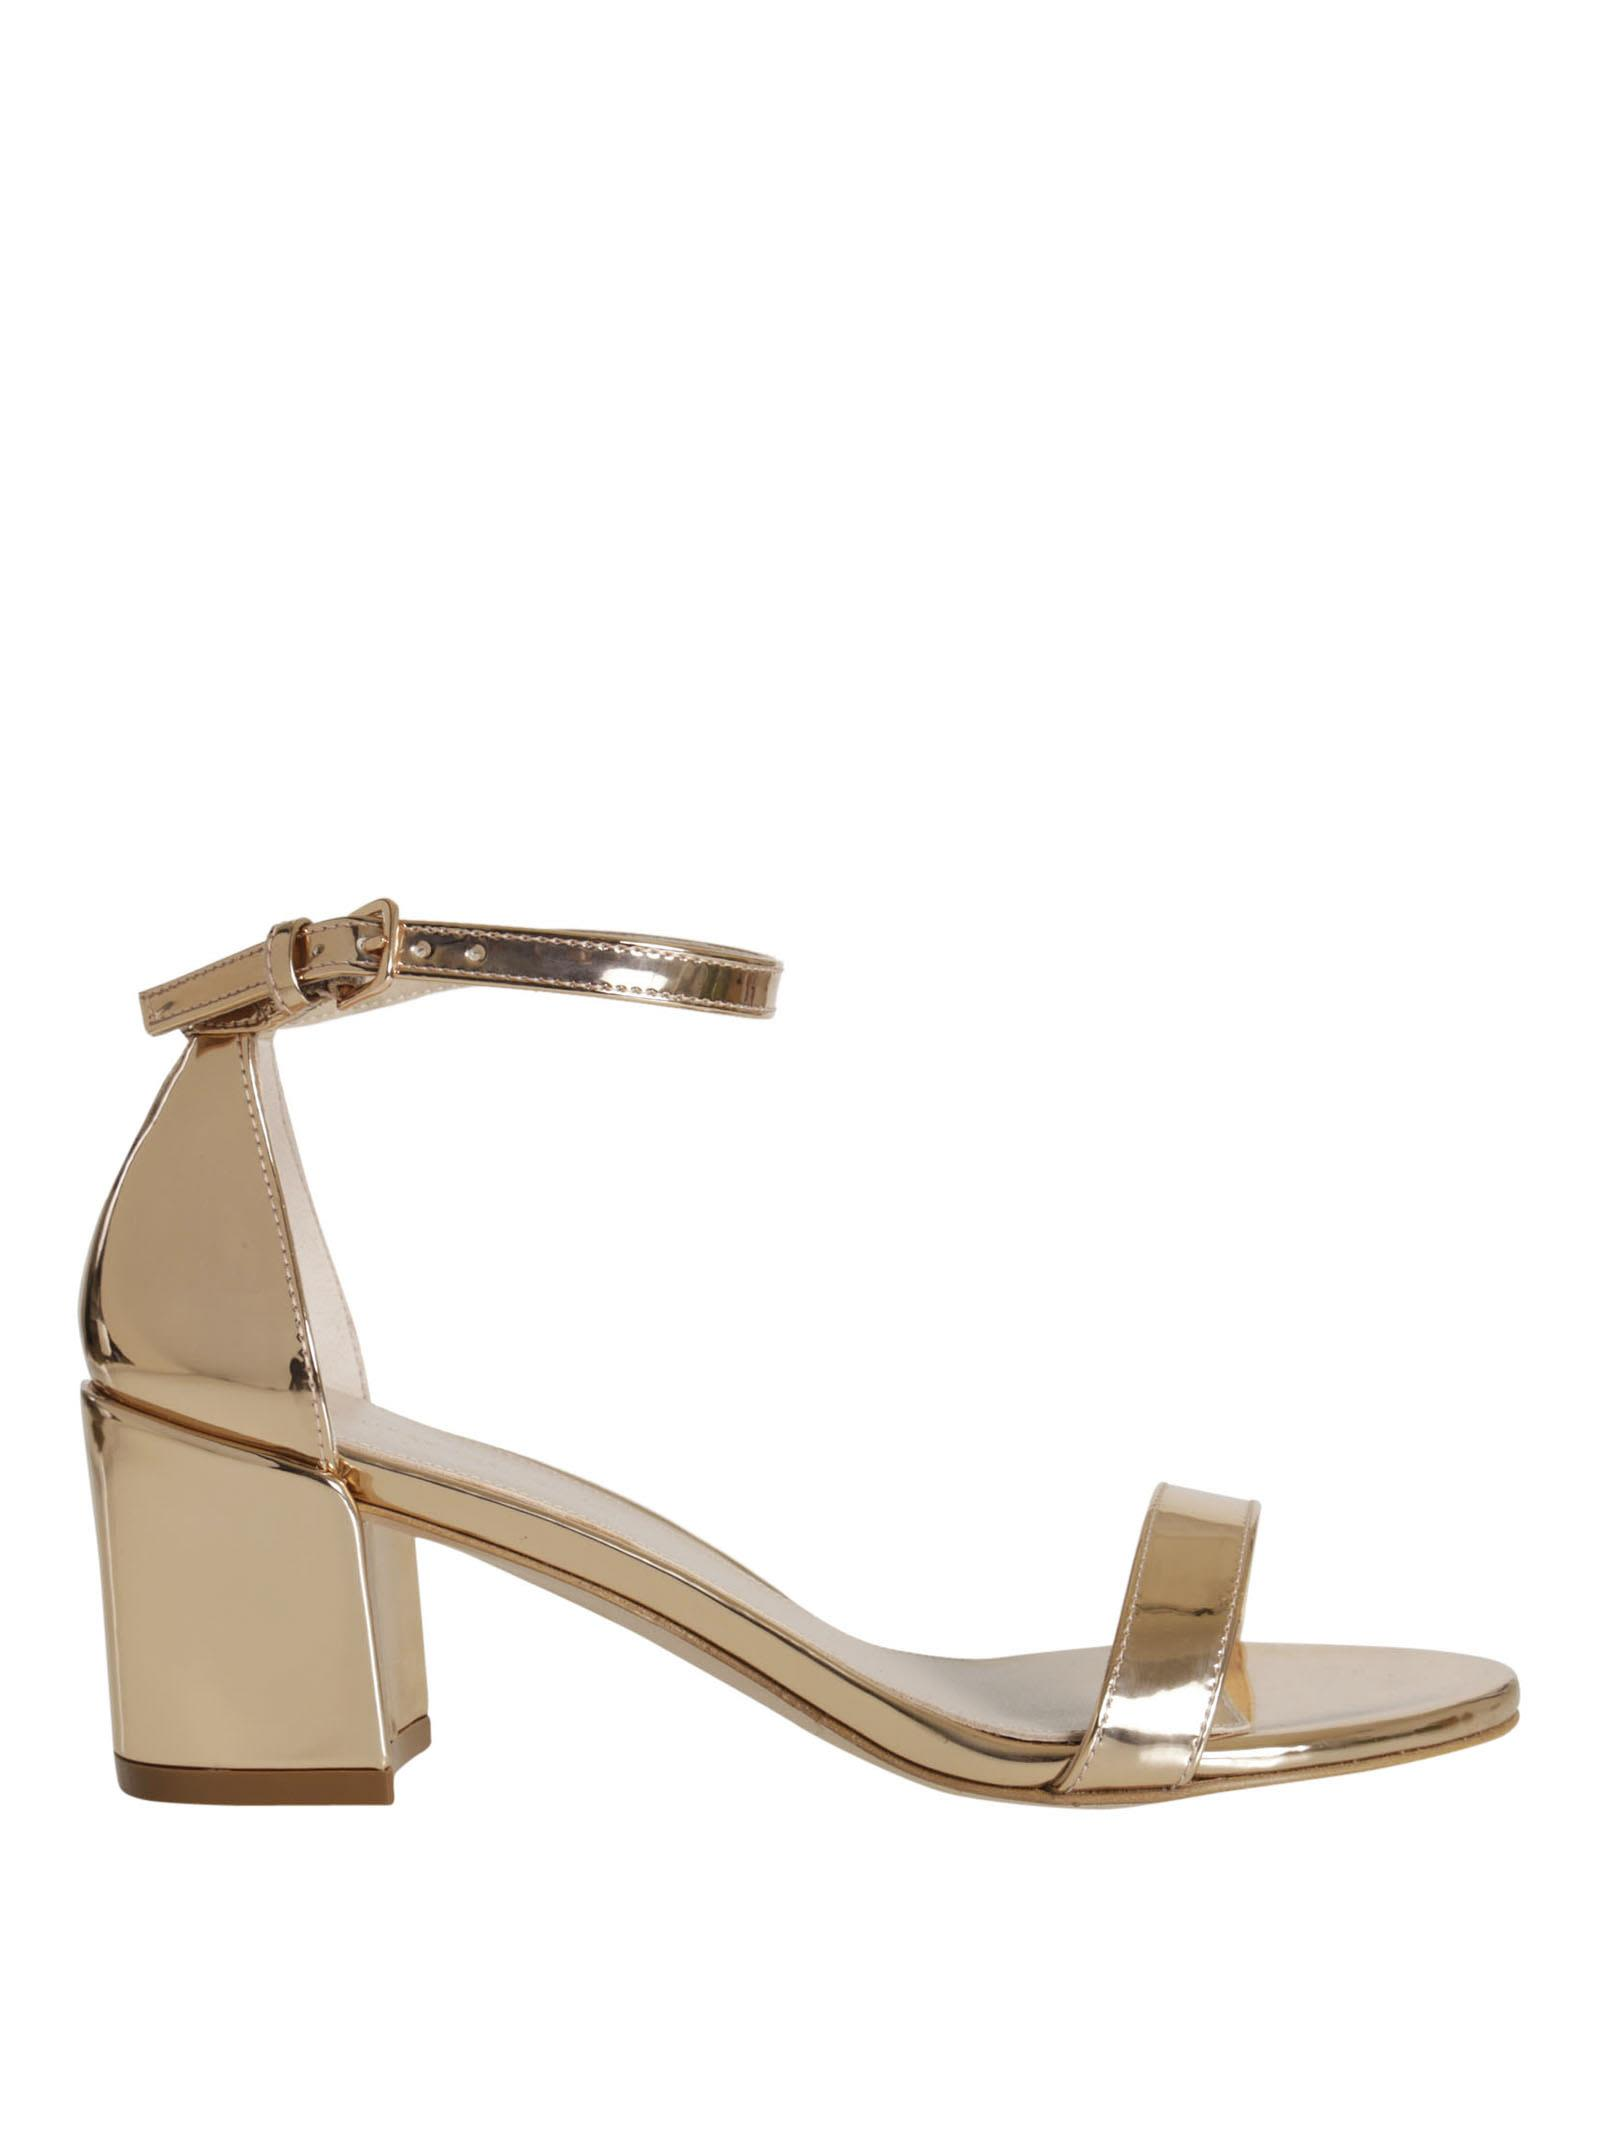 Stuart Weitzman Simple Sandals